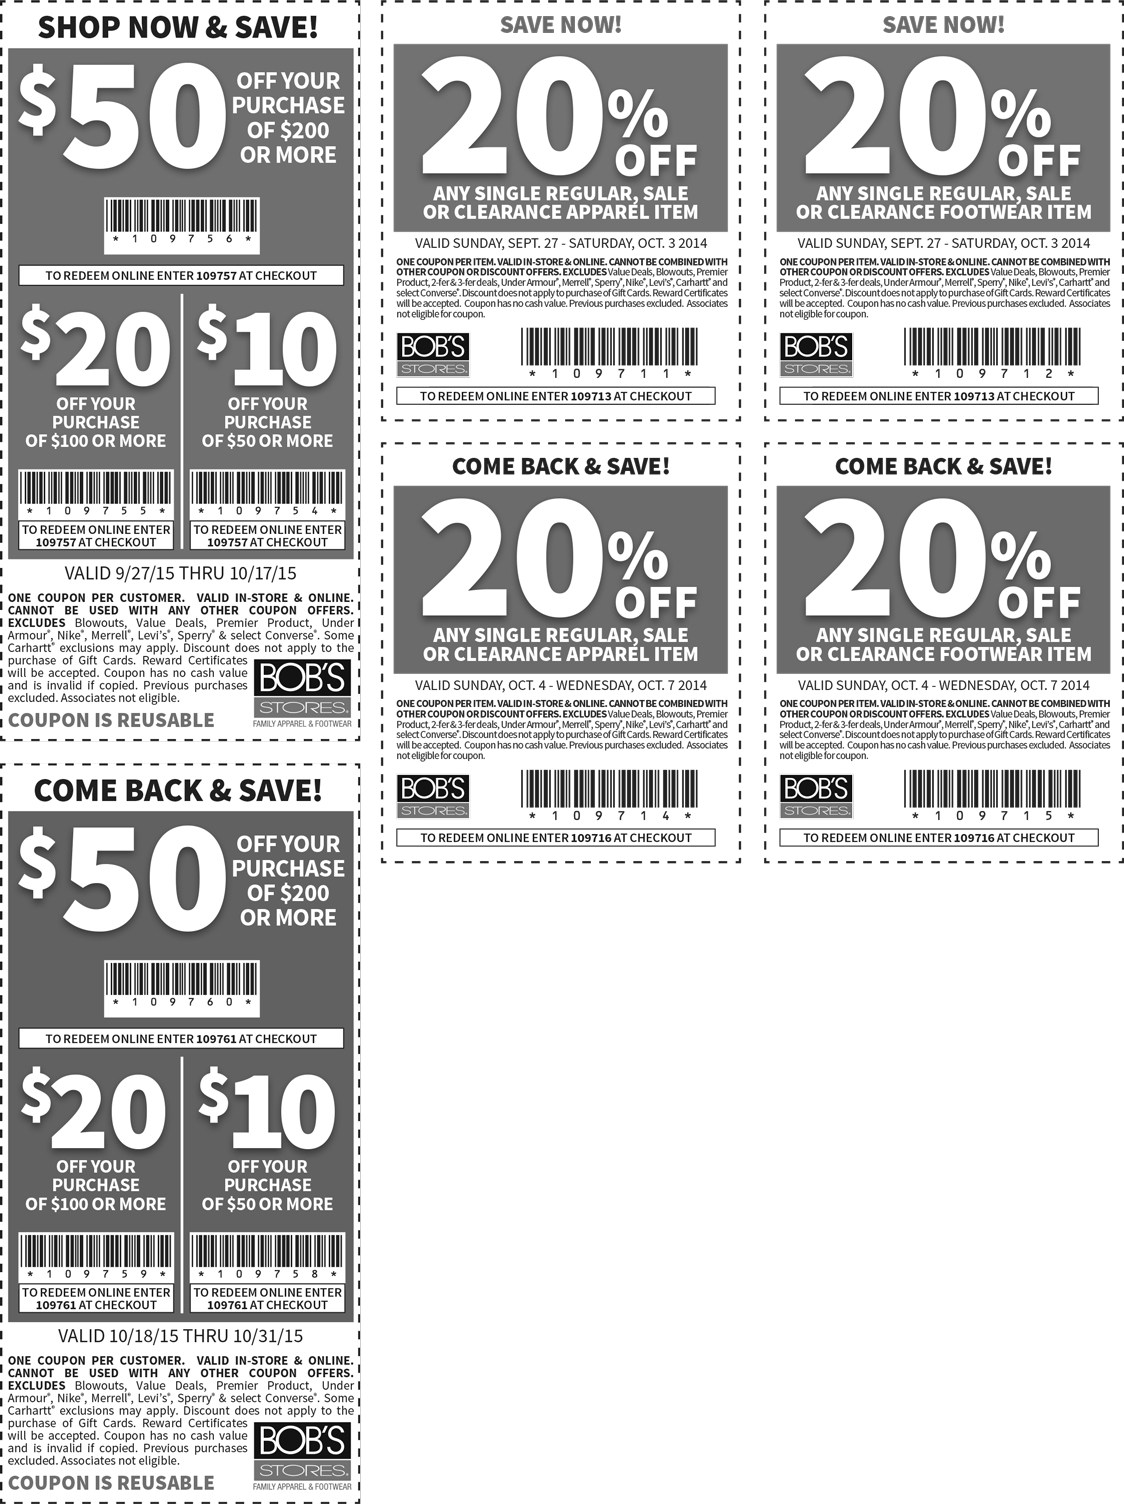 Bobs Stores Coupon August 2017 $10 off $50 & more at Bobs Stores, or online via promo code 109757